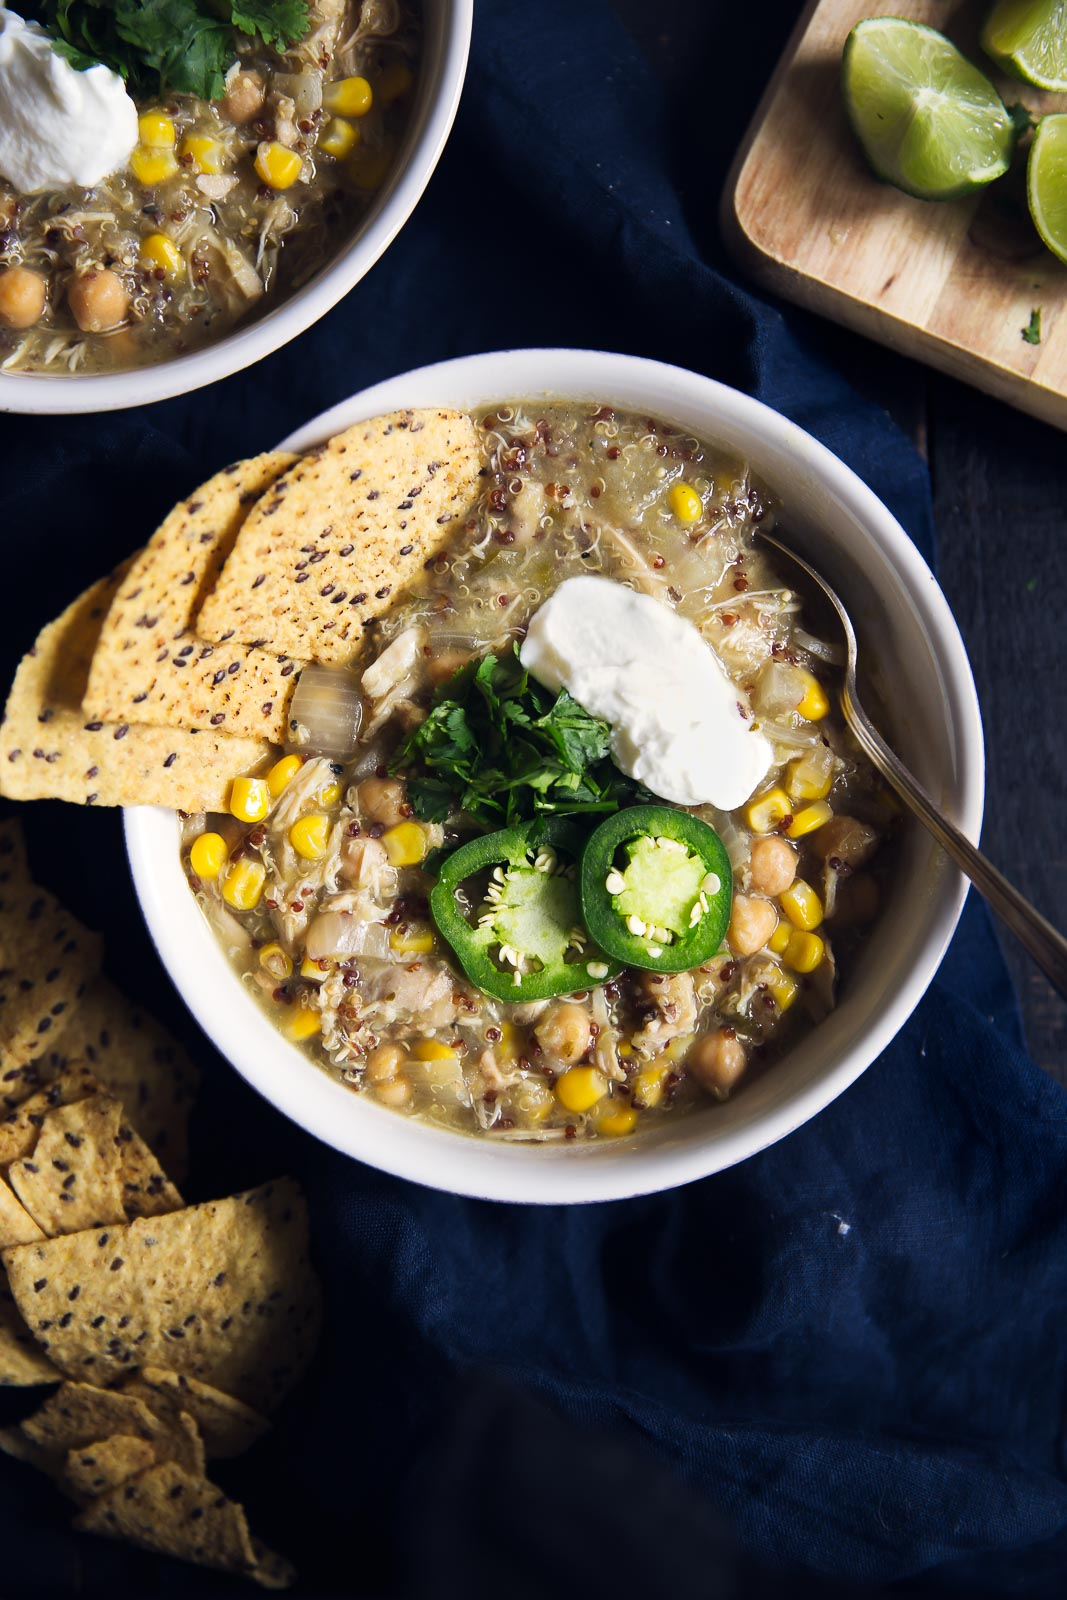 healthy chili recipes: white chili in a bowl